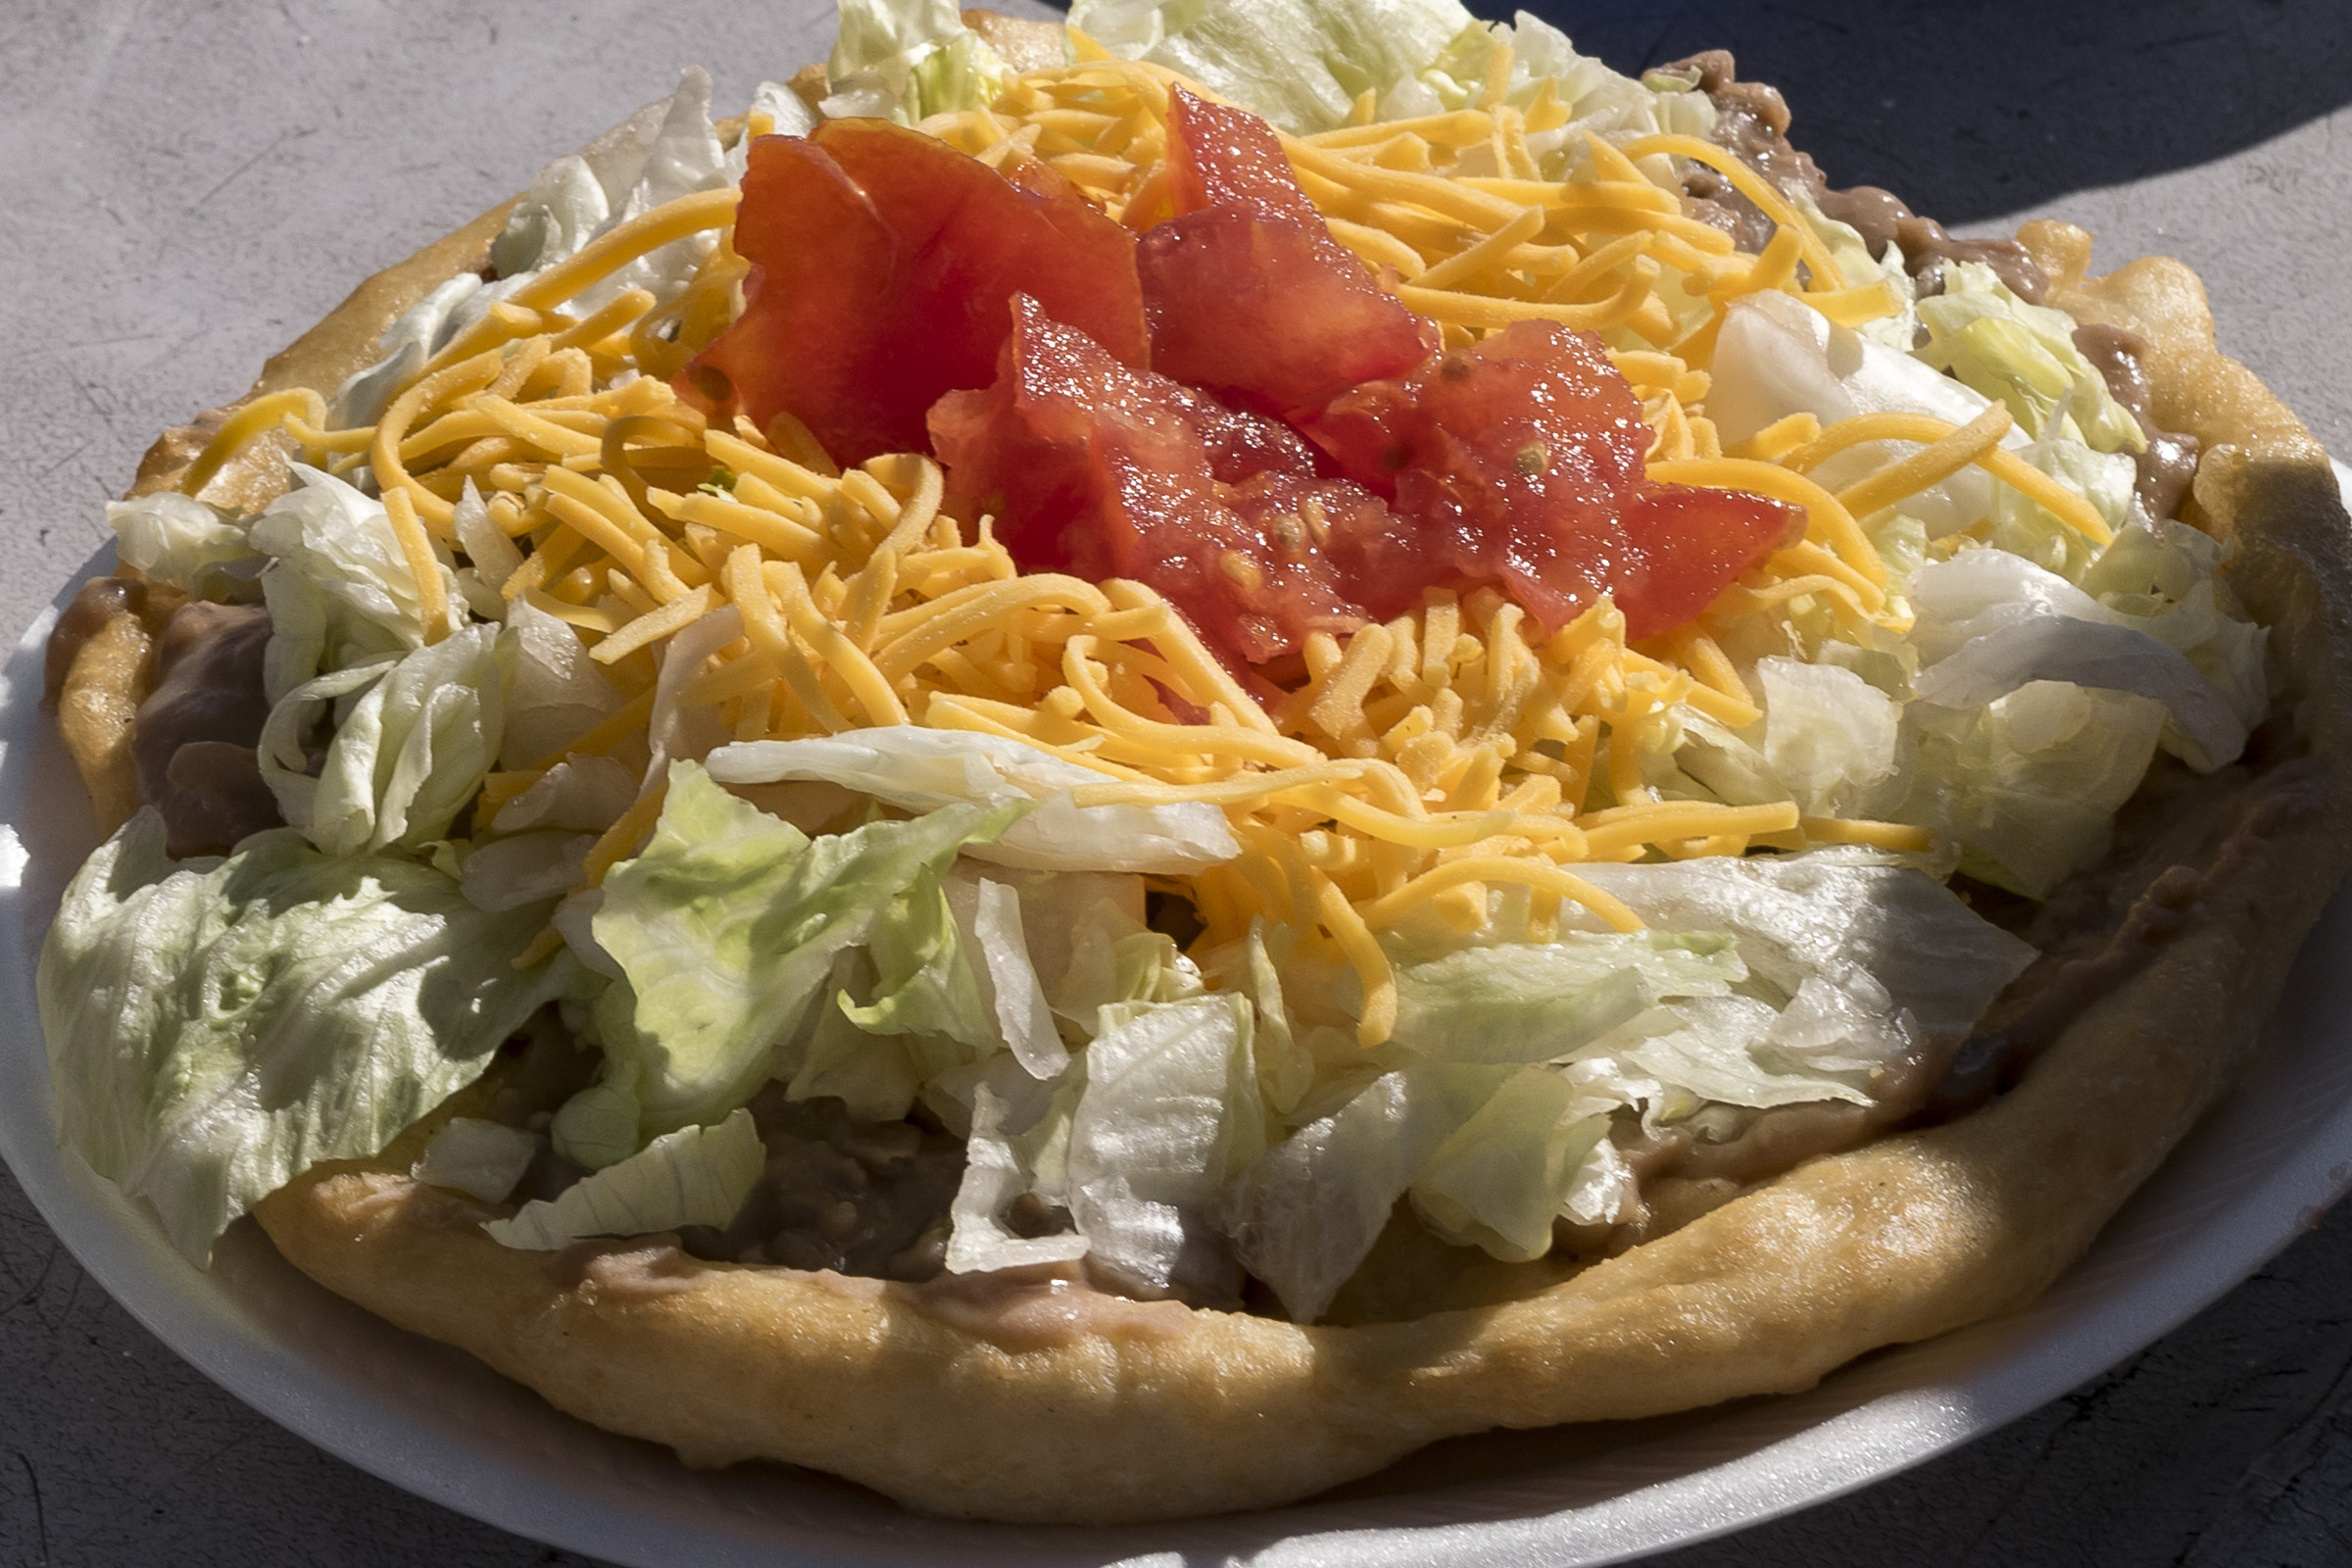 Native American fry bread with toppings